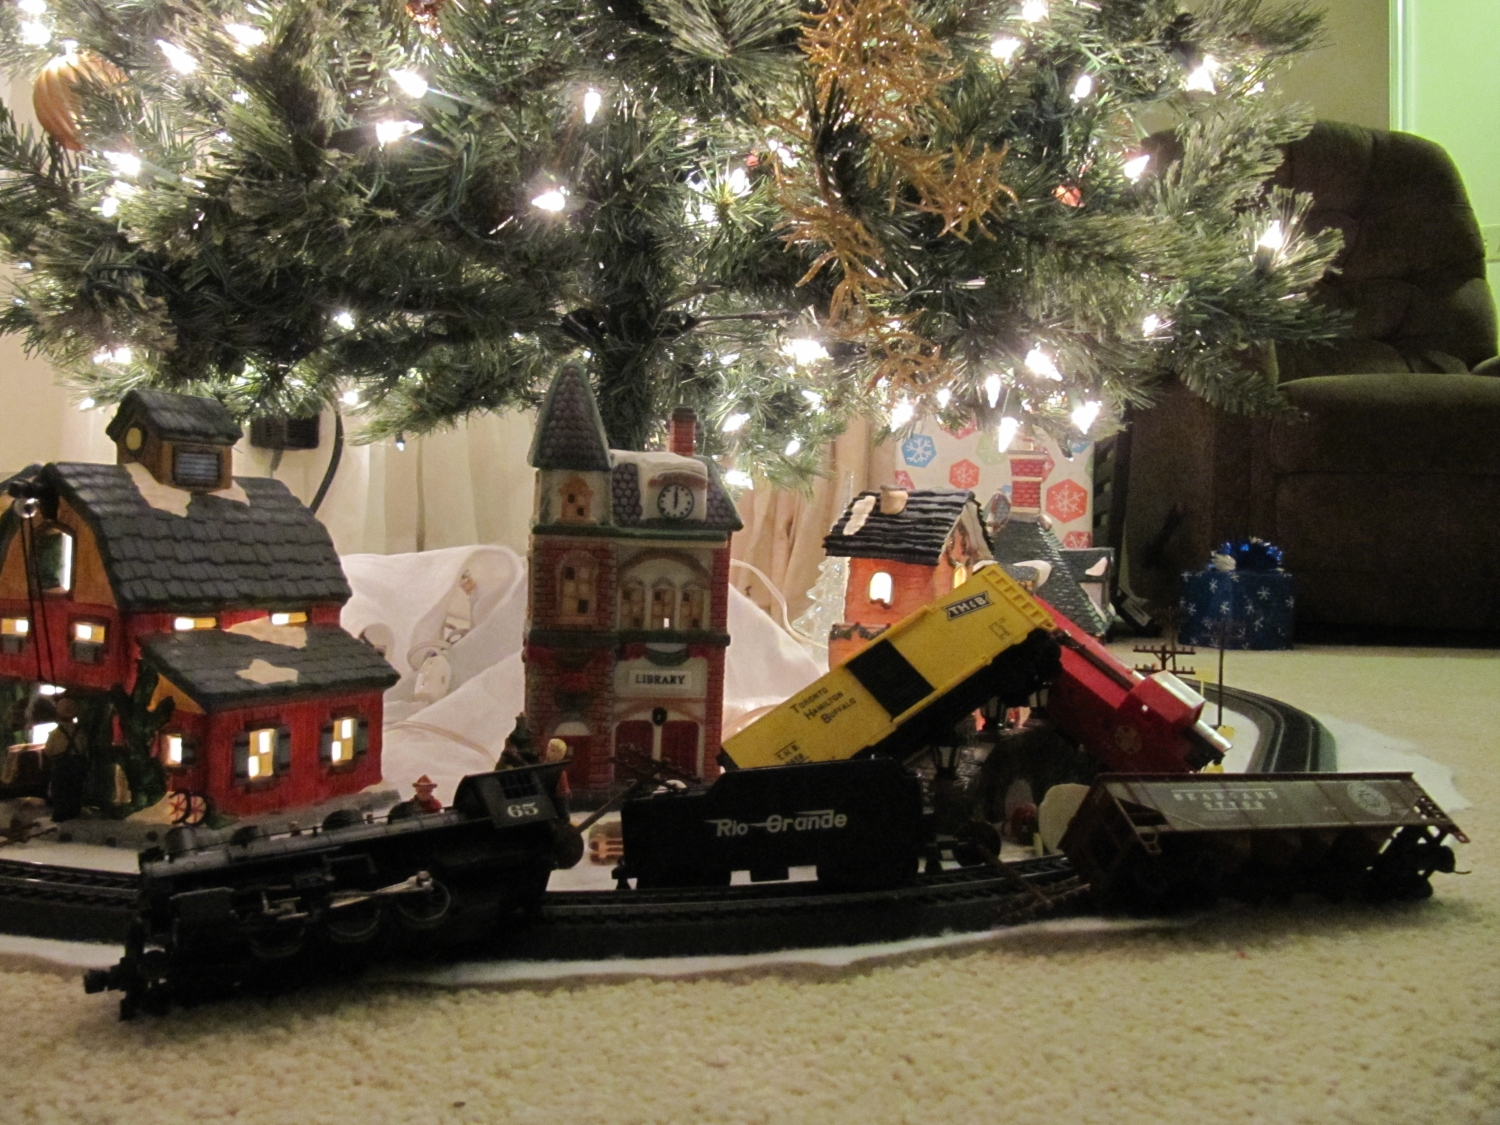 Train Crash Around The Christmas